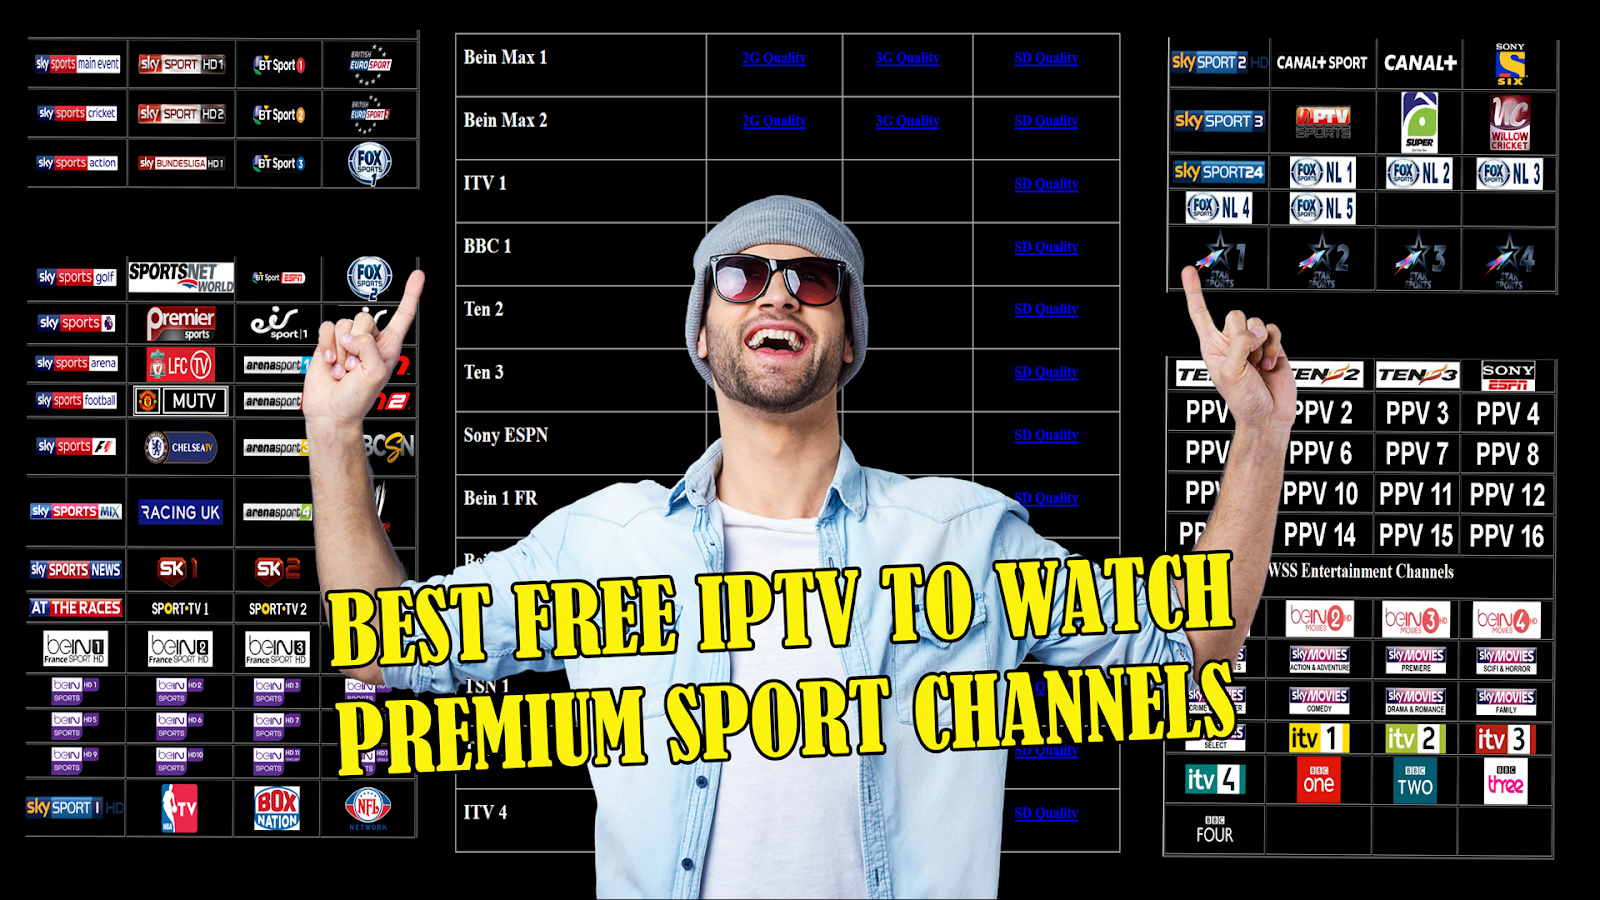 WSS 2 2 APK :BEST FREE IPTV APP TO WATCH PREMIUM SPORT